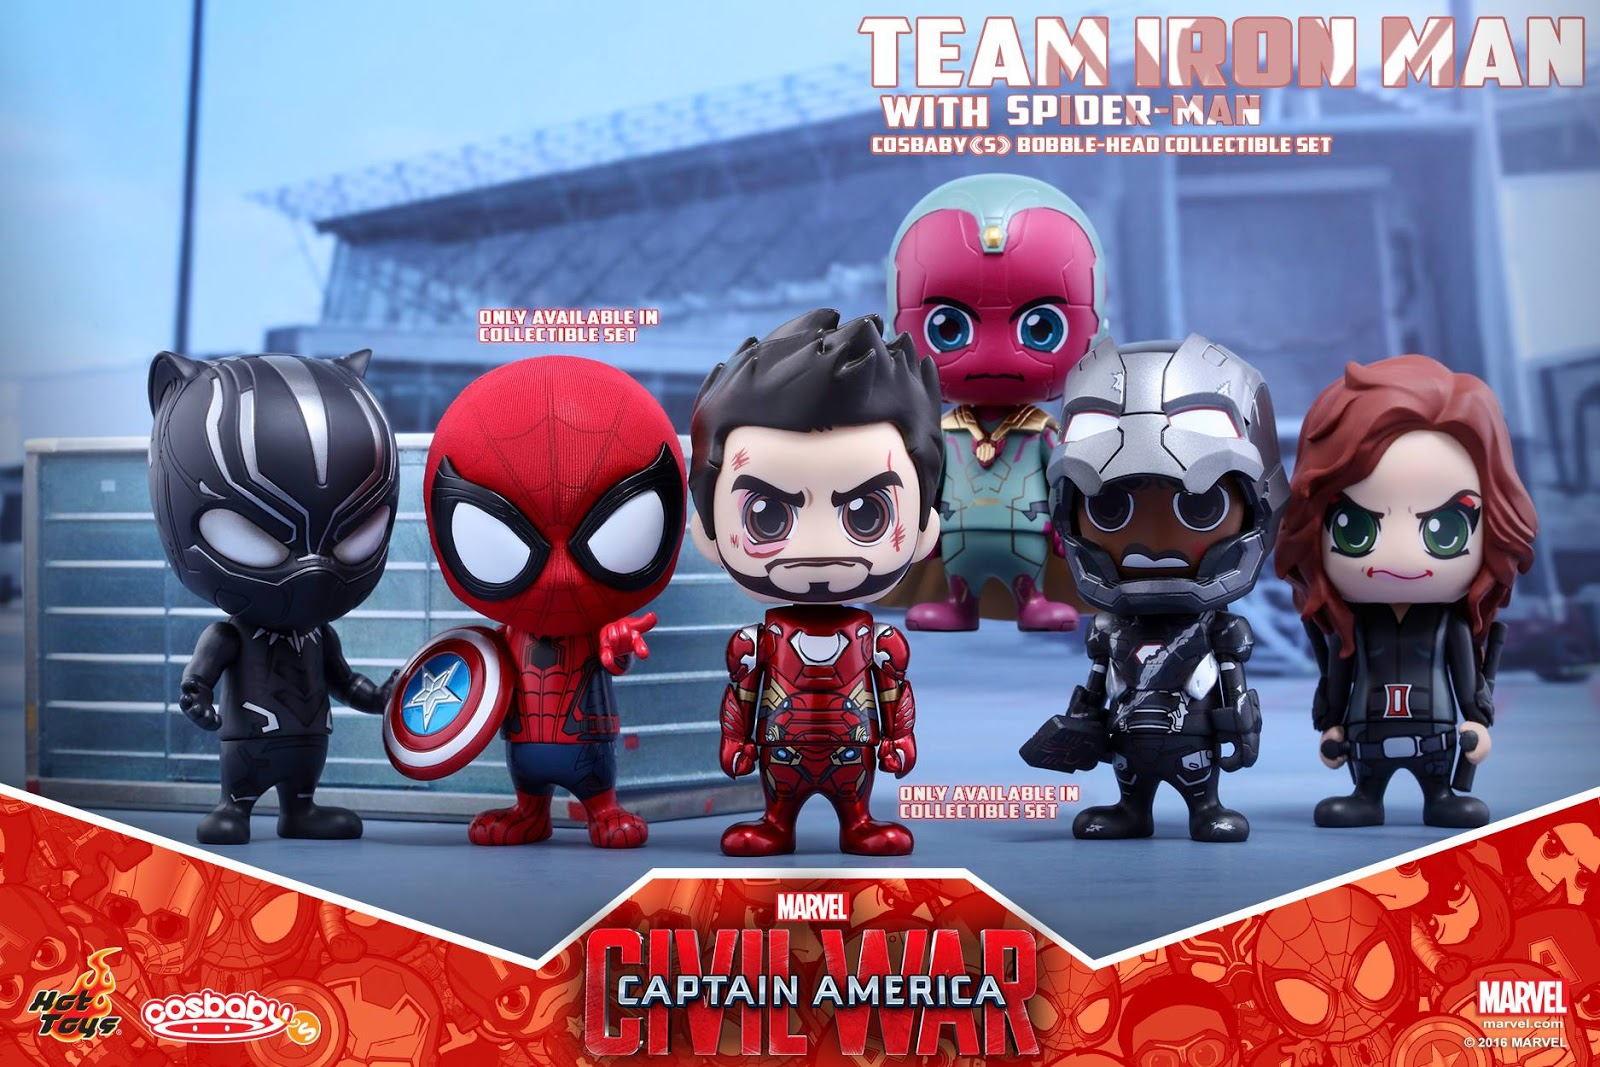 The Blot Says Captain America Civil War Team Iron Man with